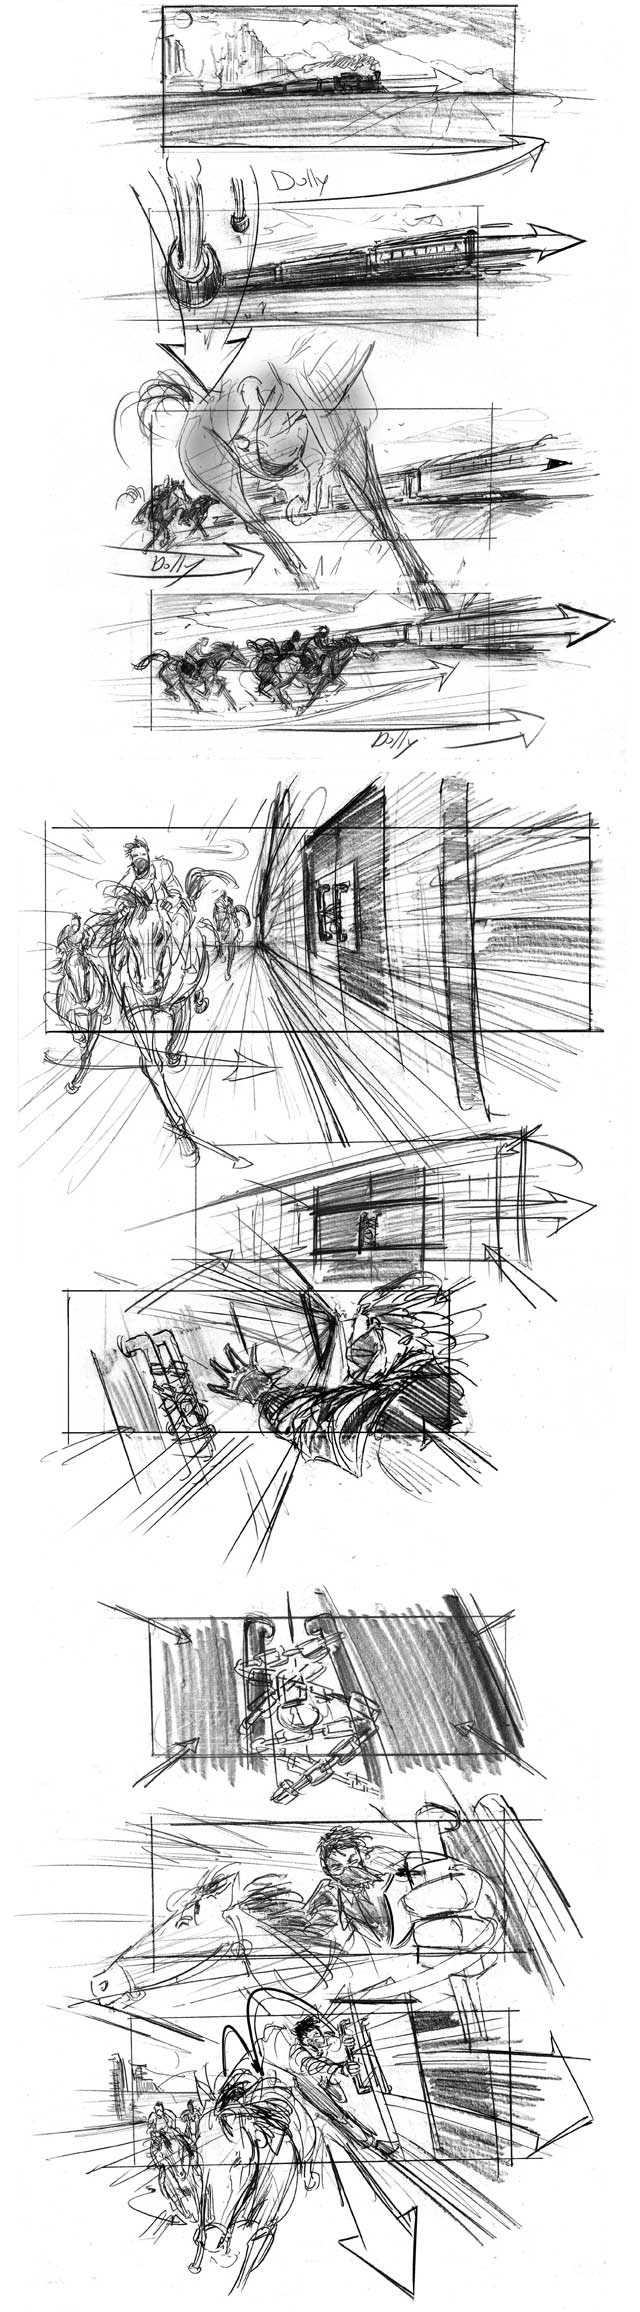 Best Storyboard Images On   Animation Storyboard To